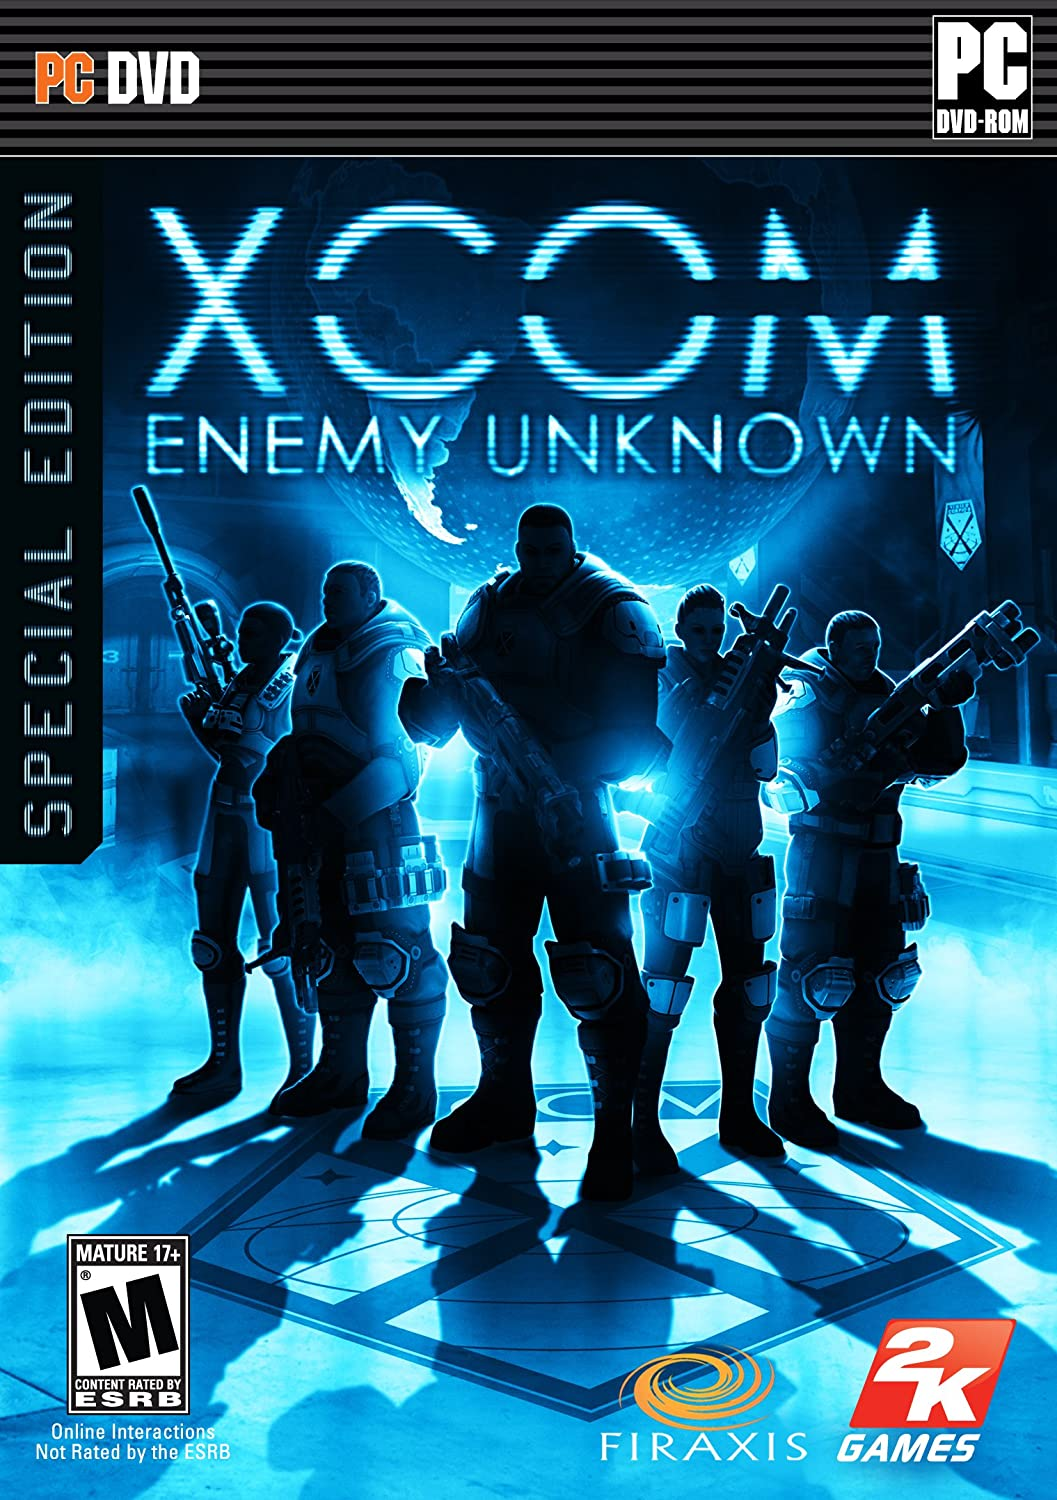 Free poster design software for windows 7 - Amazon Com Xcom Enemy Unknown Special Edition Pc Includes Game Dlc Artbook Poster Soundtrack Video Games